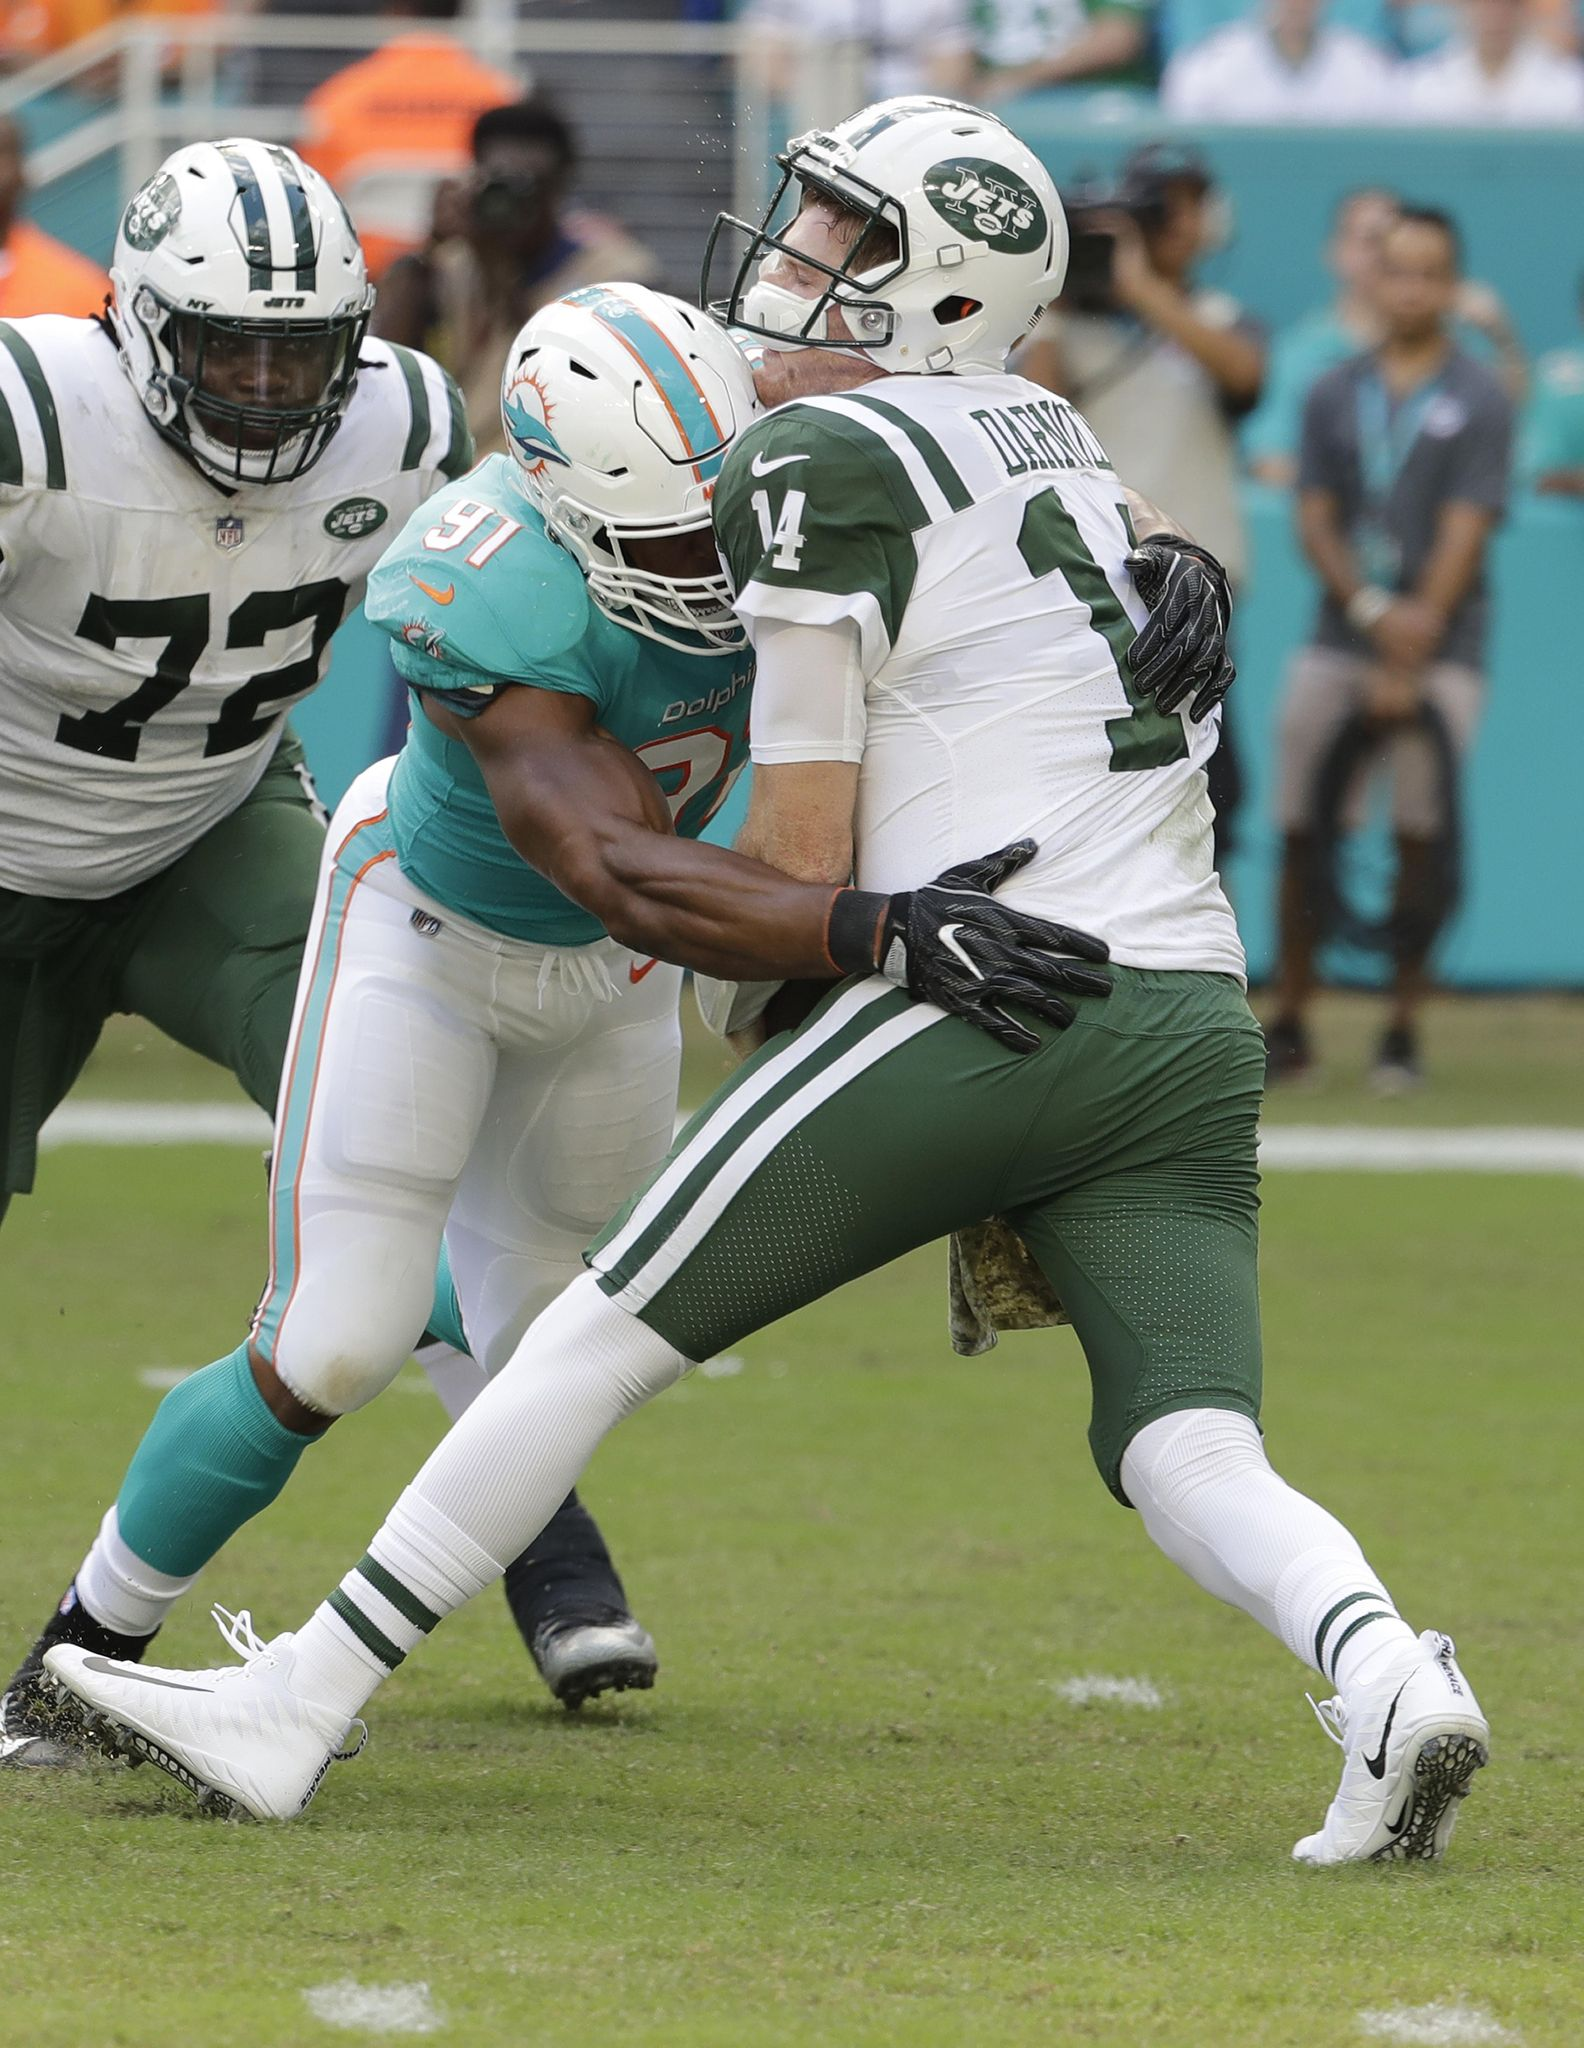 Jets_dolphins_football_94355_s1584x2048